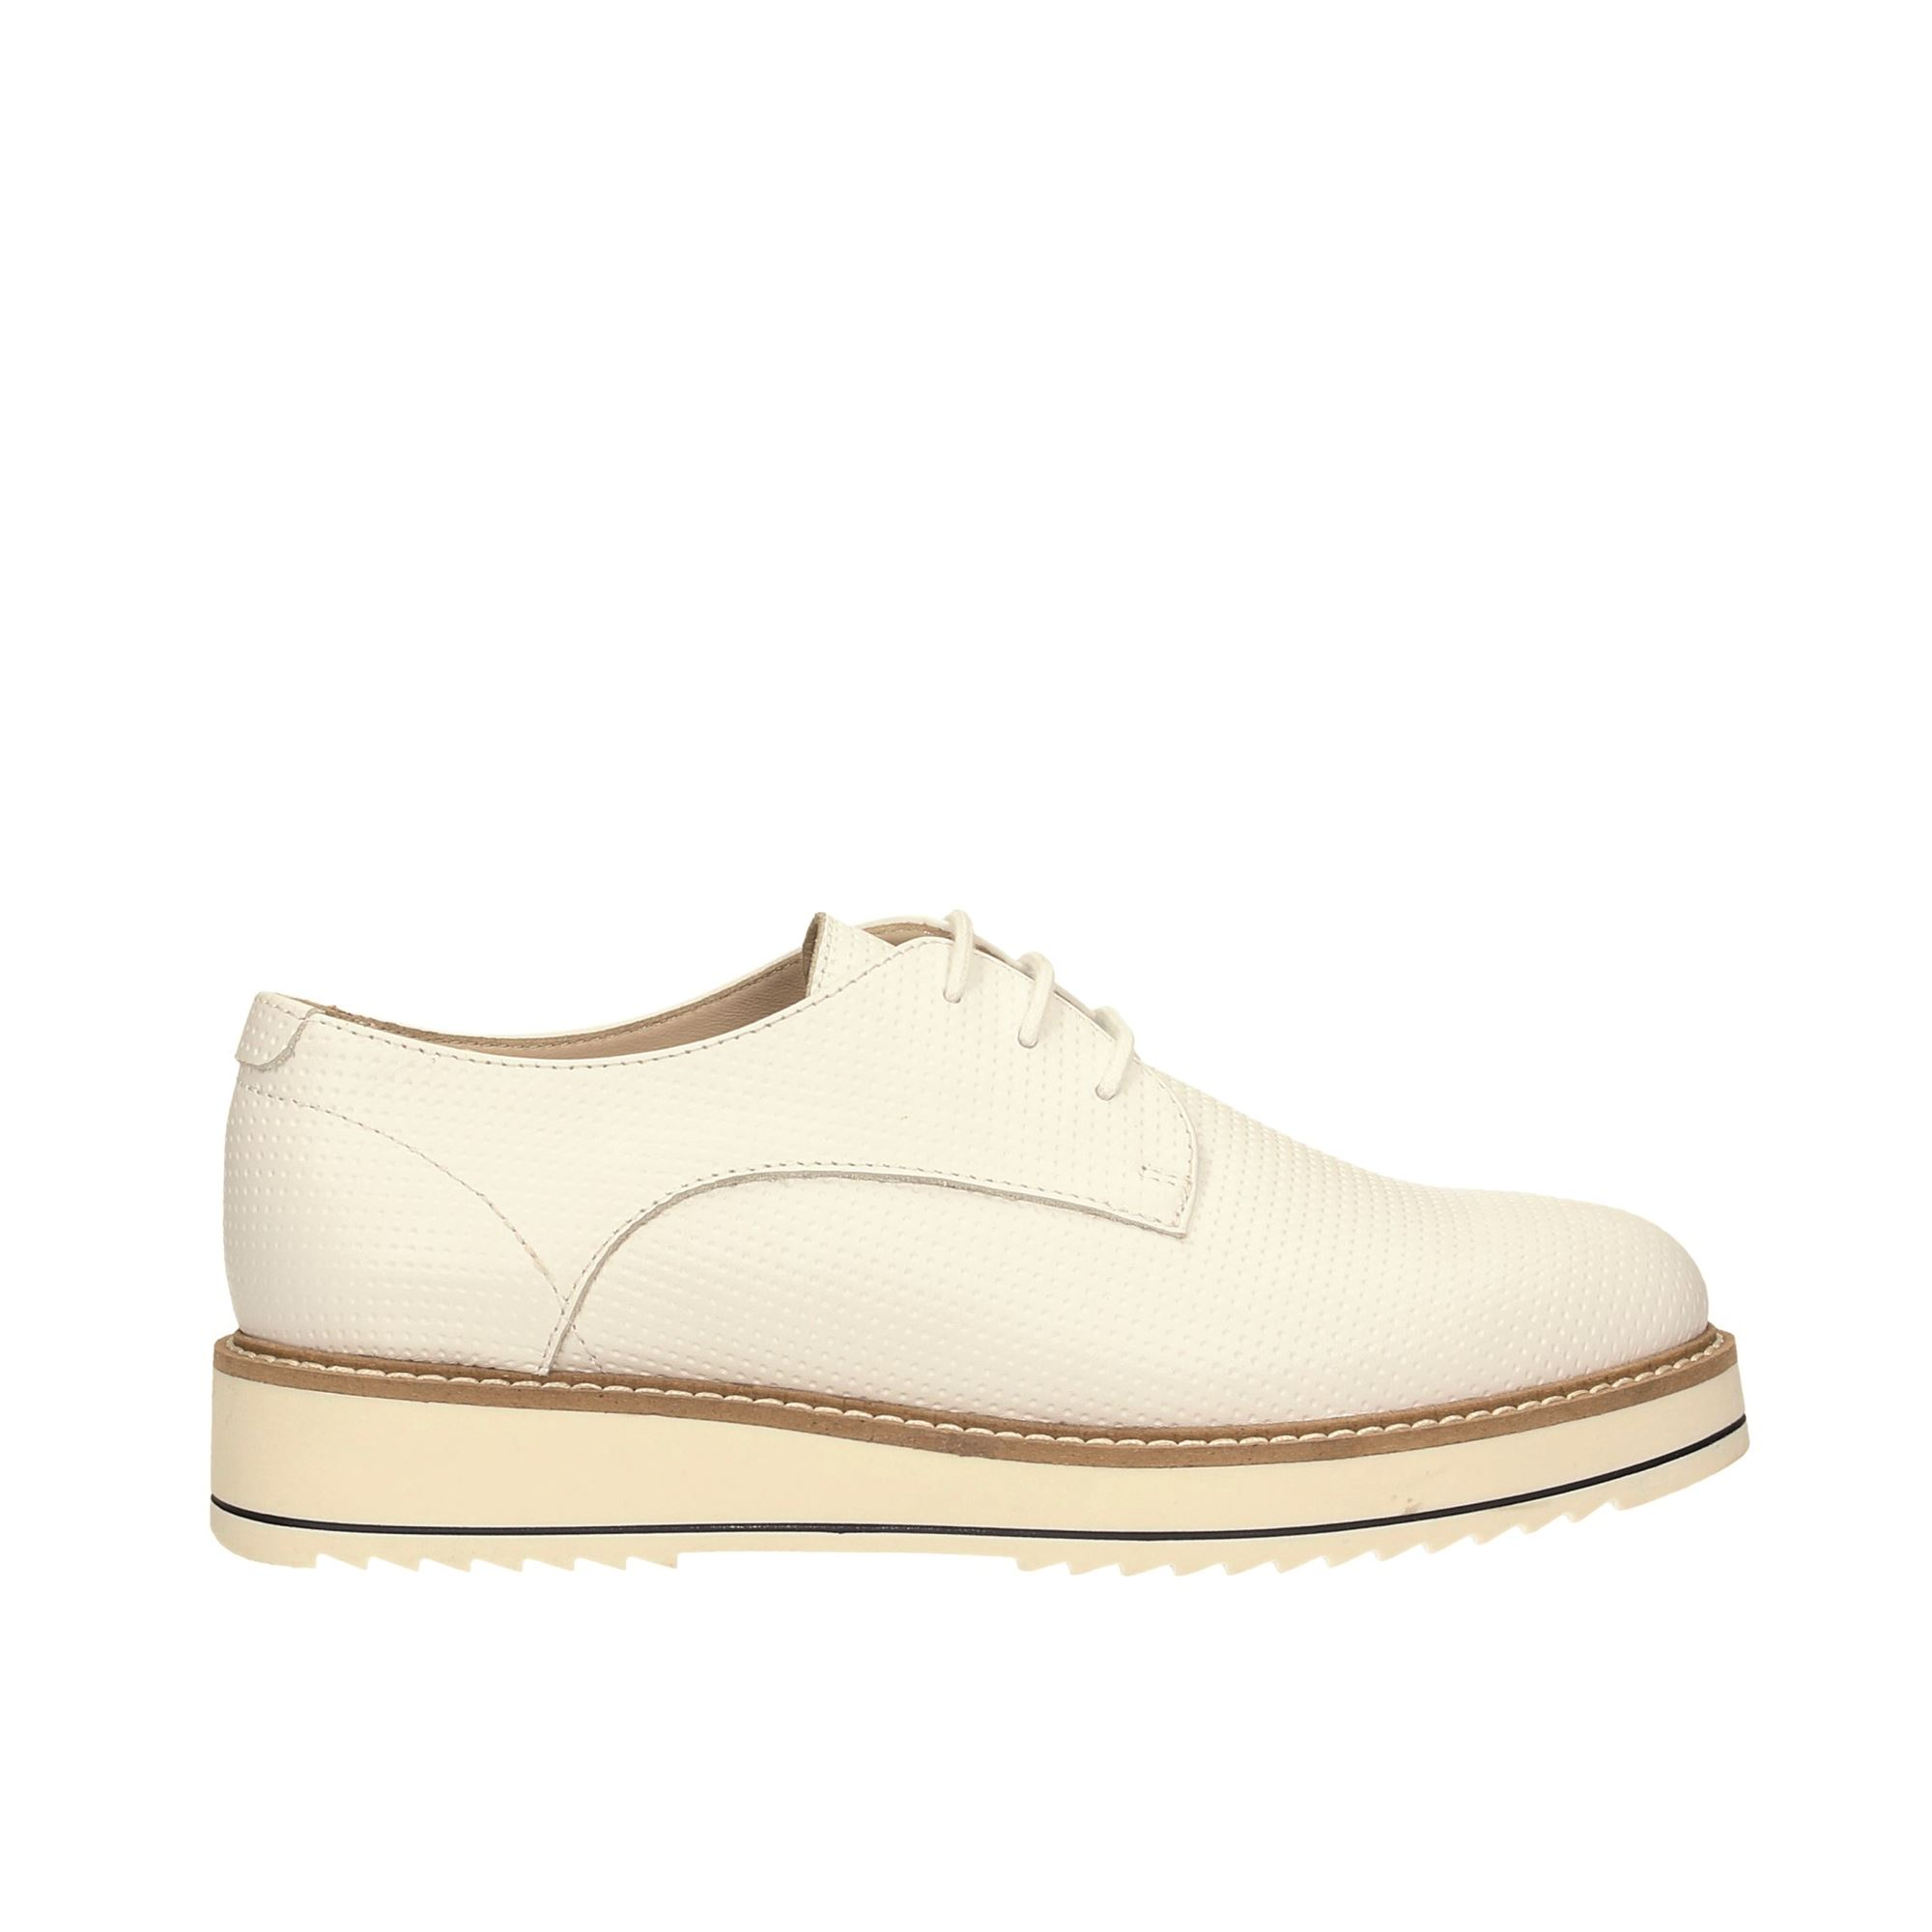 Tata Italia Shoes Woman Stringate White WS-201R04